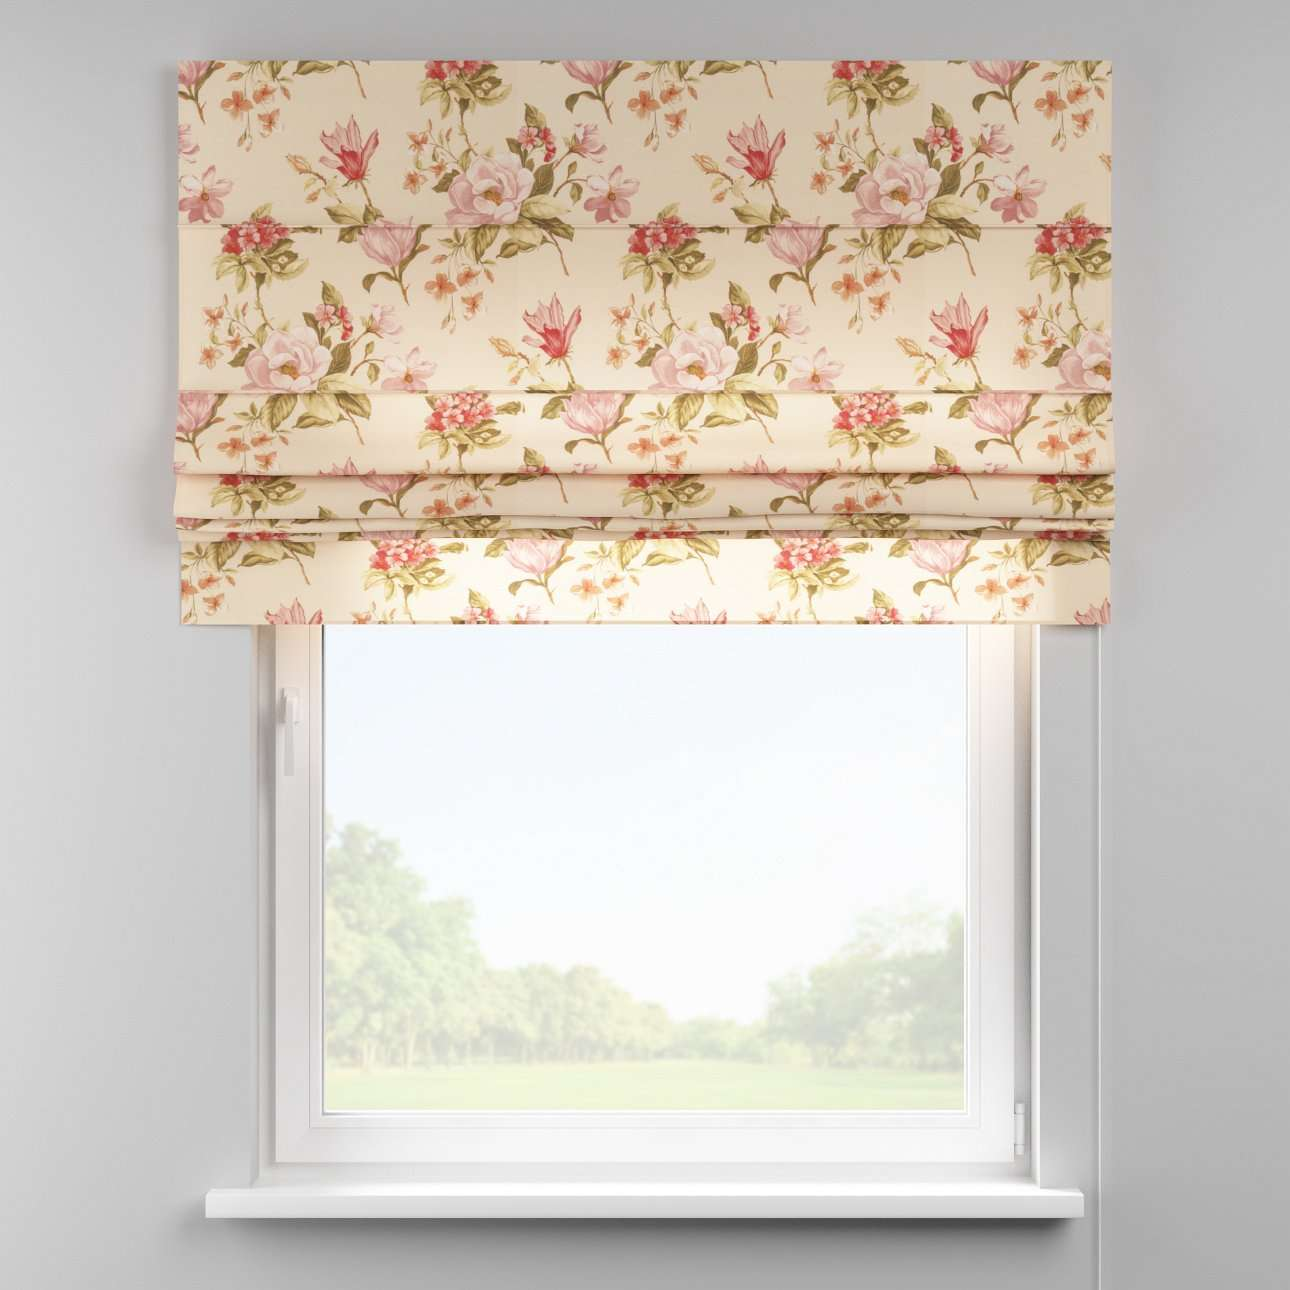 Padva roman blind  80 x 170 cm (31.5 x 67 inch) in collection Londres, fabric: 123-05